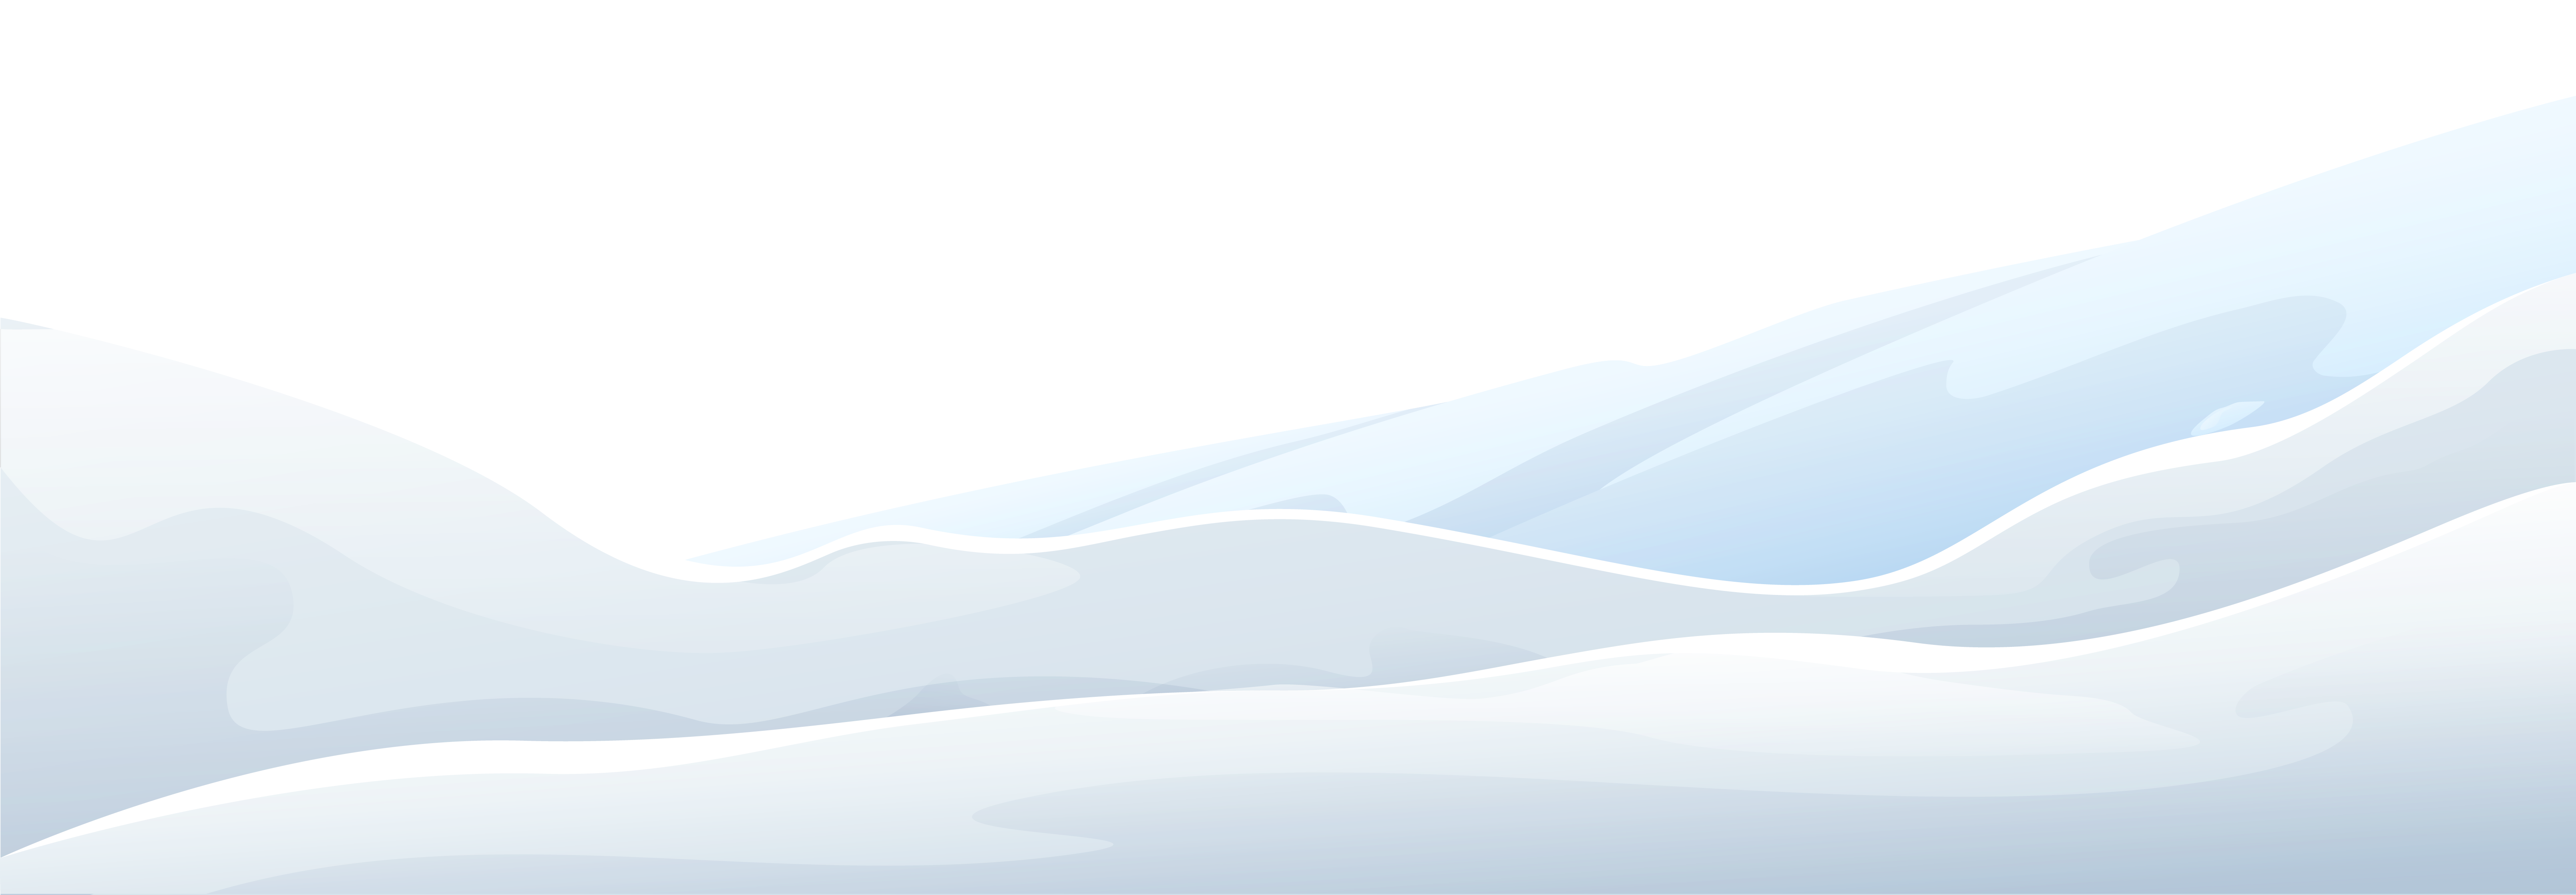 Snow on ground png. Winter clipart image gallery